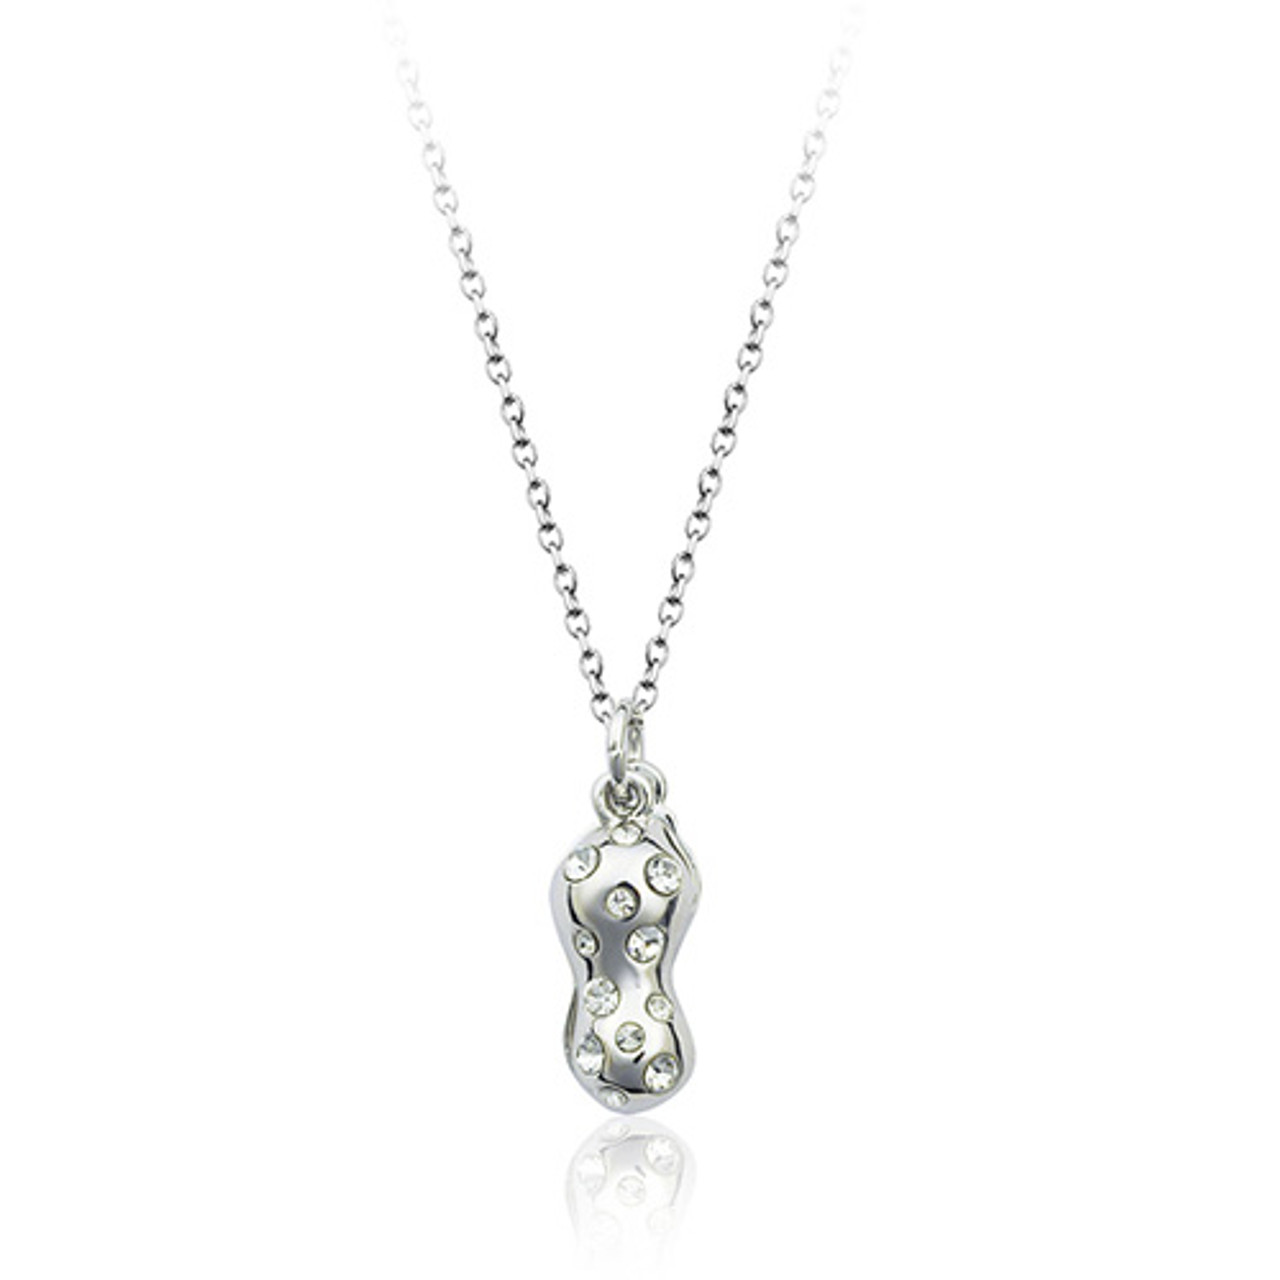 64035e632 18K Gold Plated Genuine Peanut Cubic Zirconia Necklace